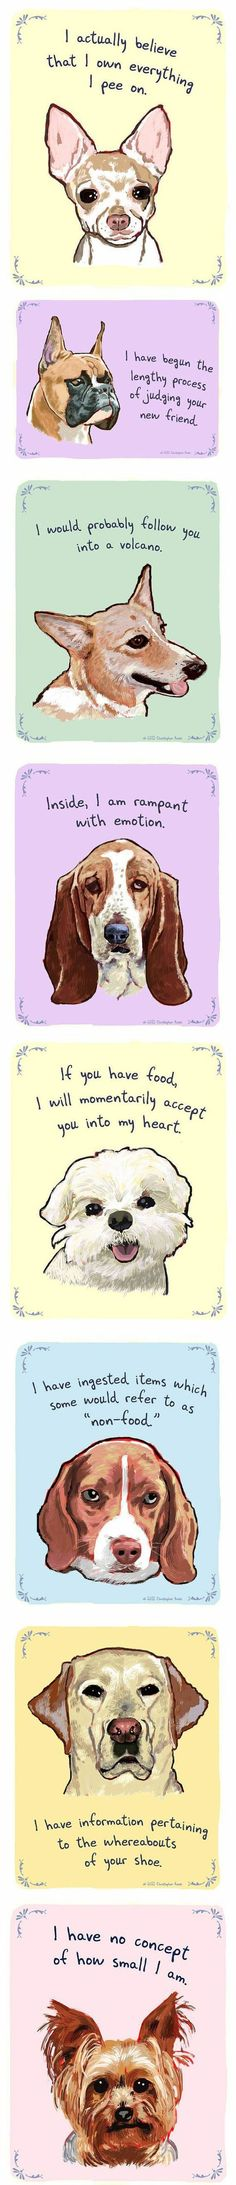 Dogs feelings. For @Sara Miller, @Brittany Miller, and @Patti Barishefsky. You know why.